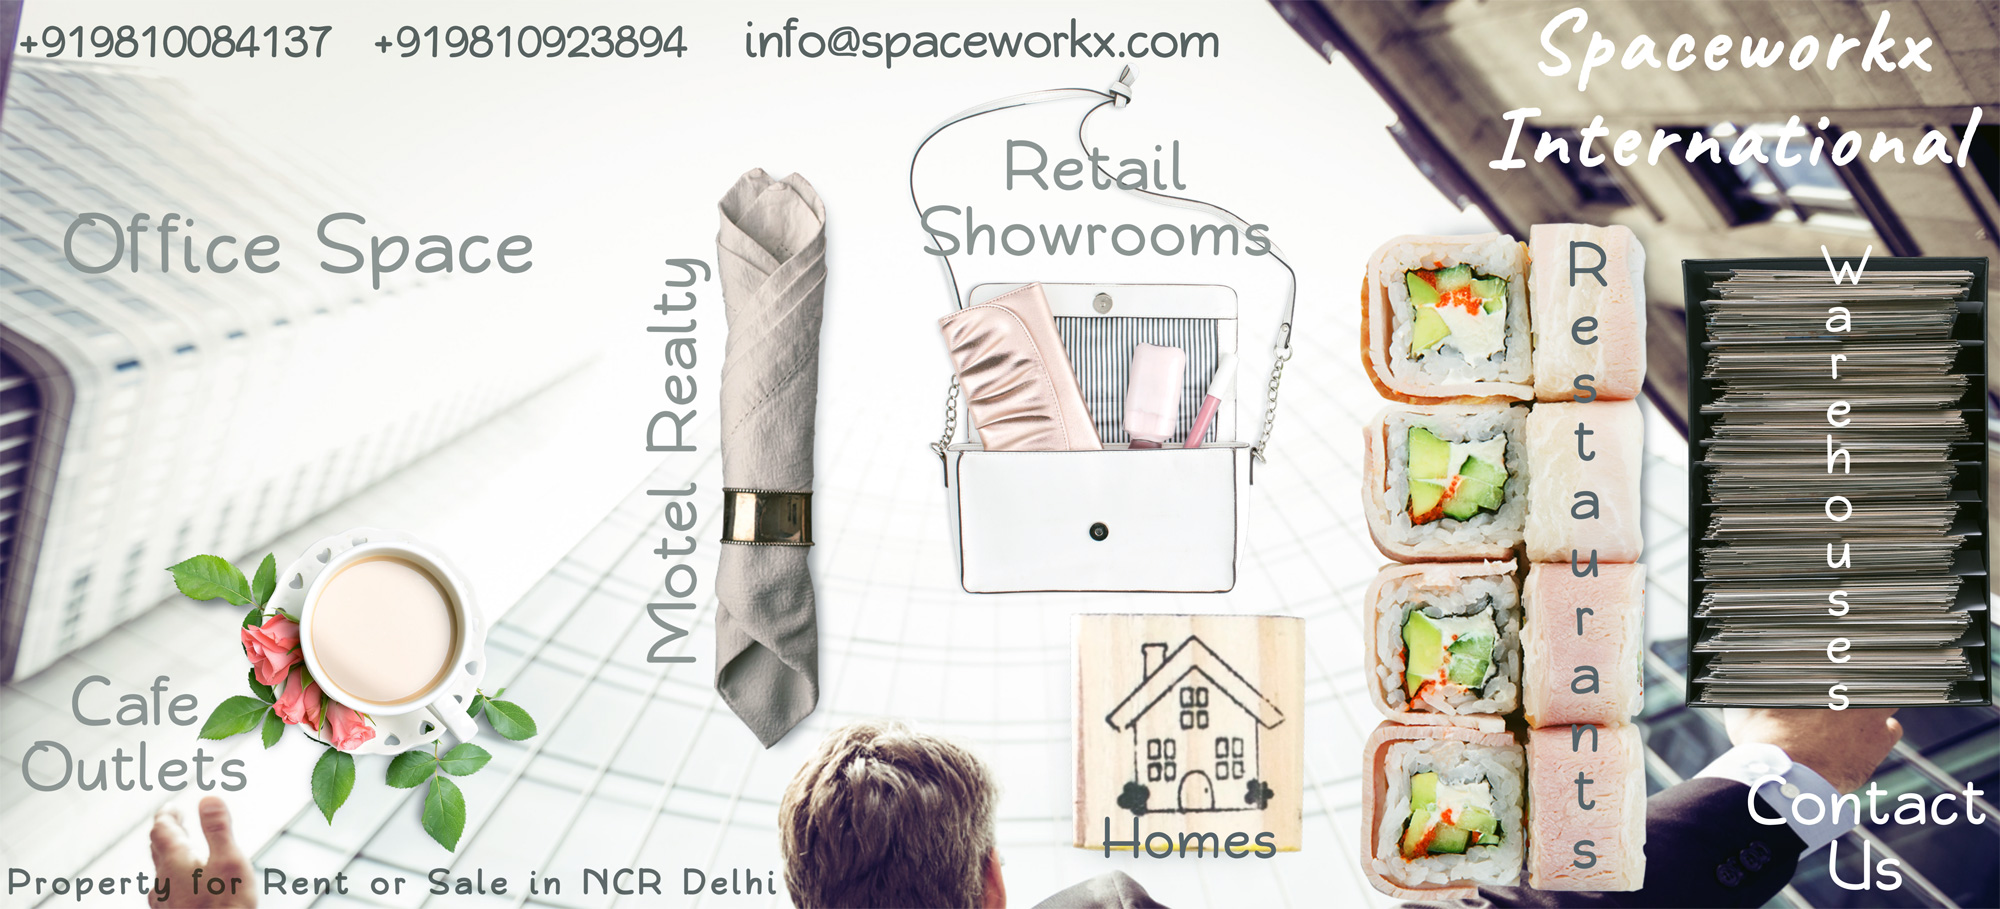 contact for property on rent or sale in ncr delhi real estate market